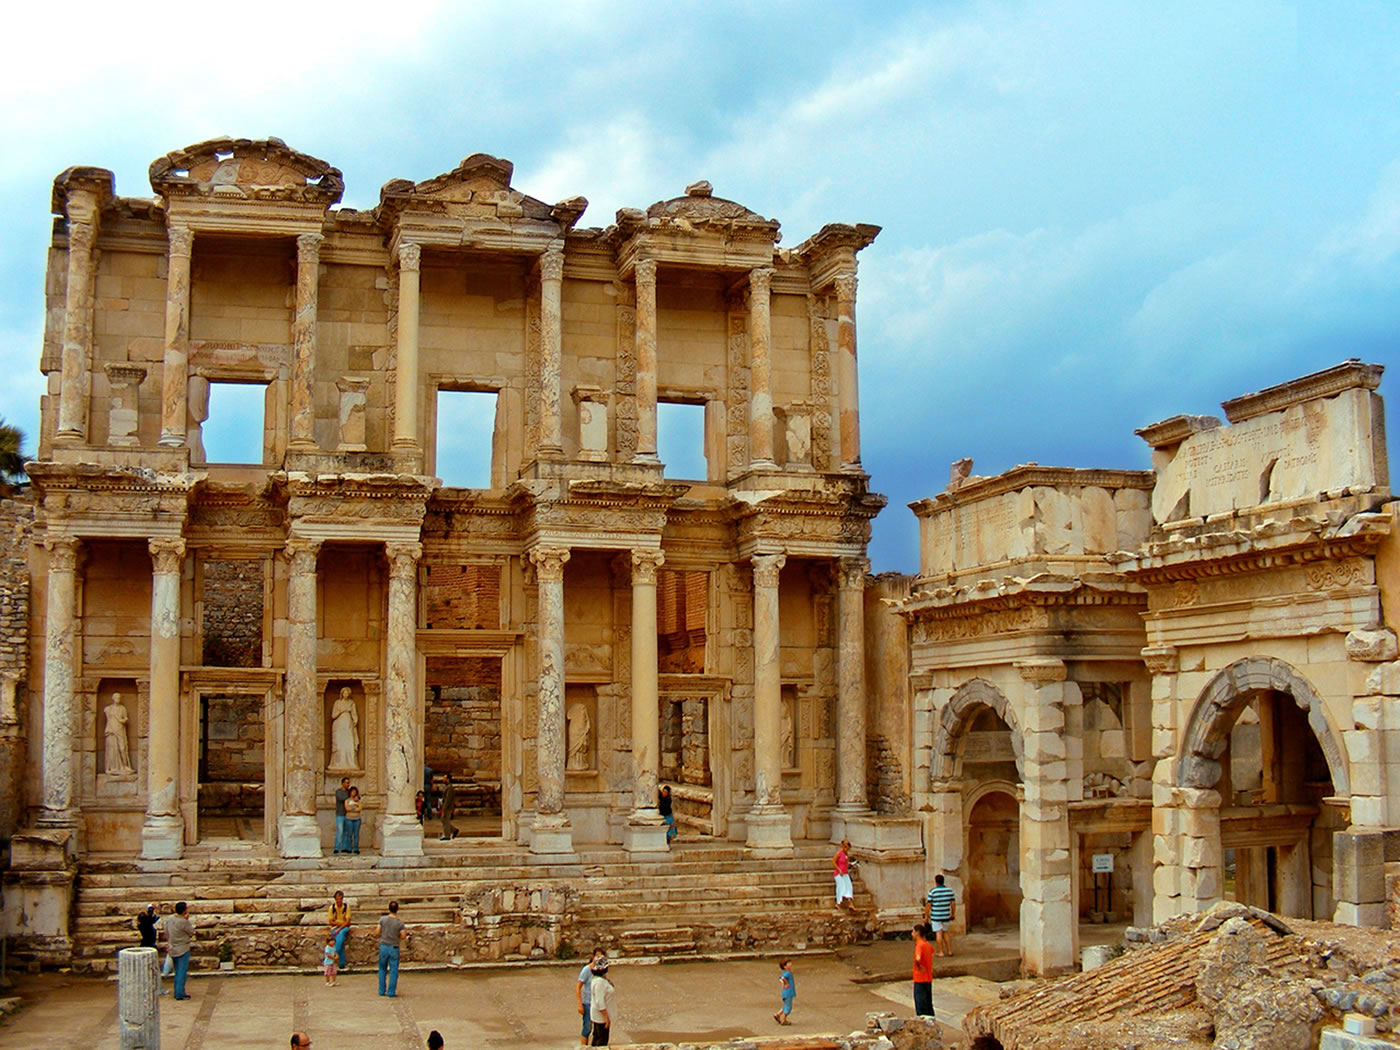 10 Days 9 Nights Istanbul, Gallipoli, Troy, Pergamon, Ephesus, Pamukkale And Cappadocia Tour Package